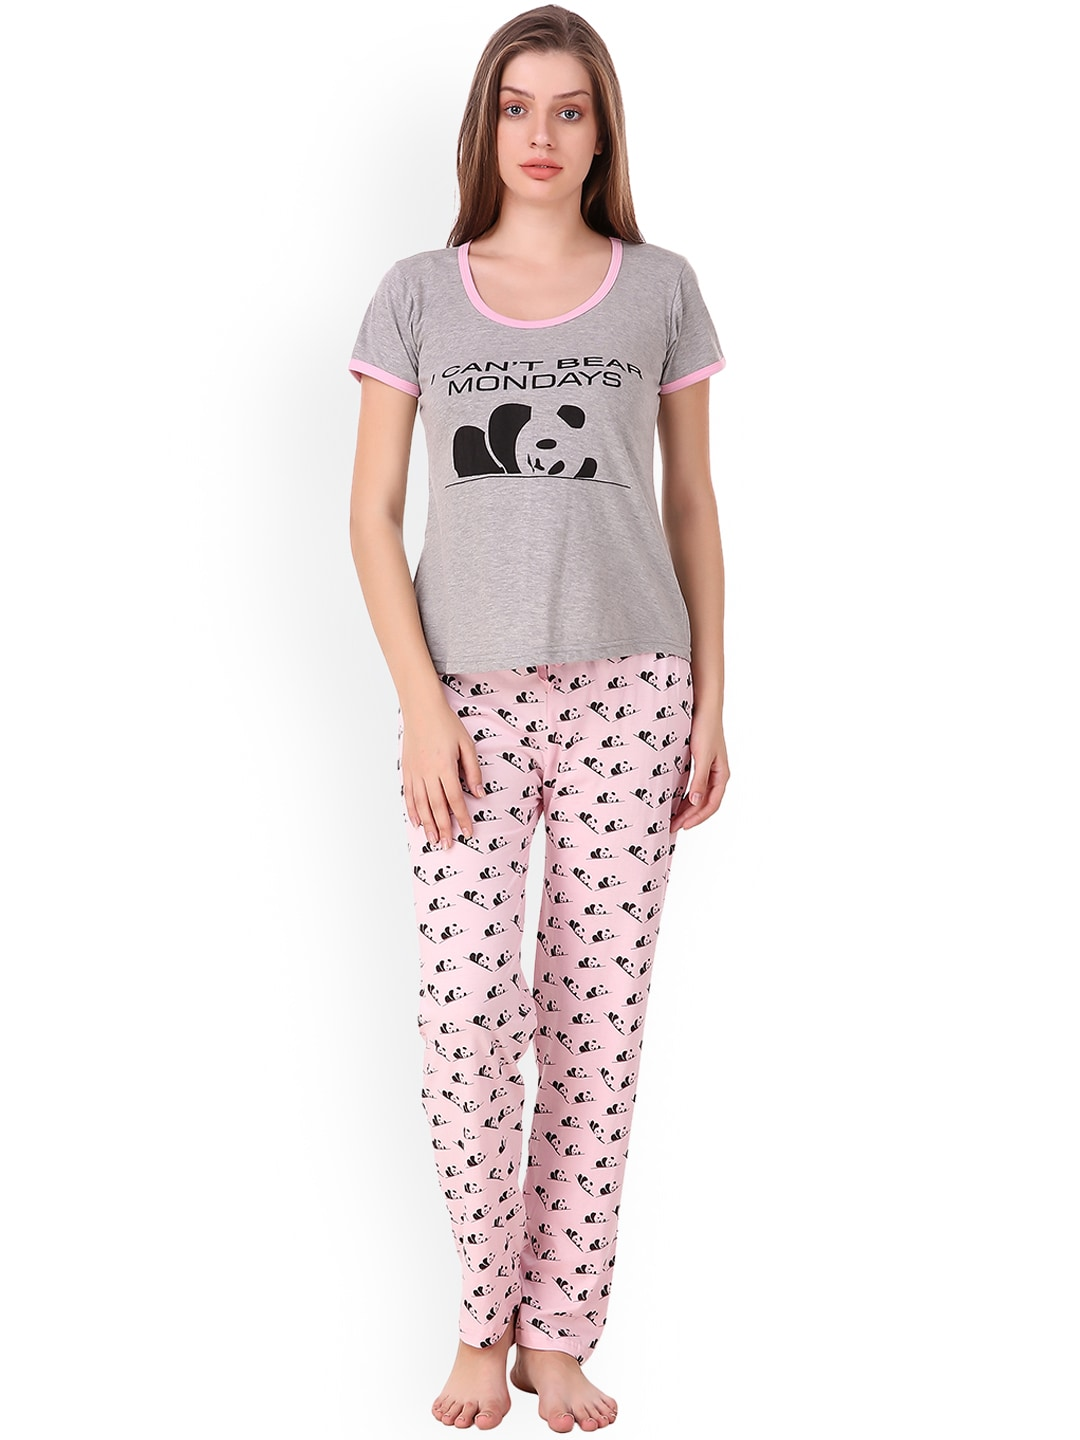 e3d2cf3950c3 Women Loungewear   Nightwear - Buy Women Nightwear   Loungewear online -  Myntra